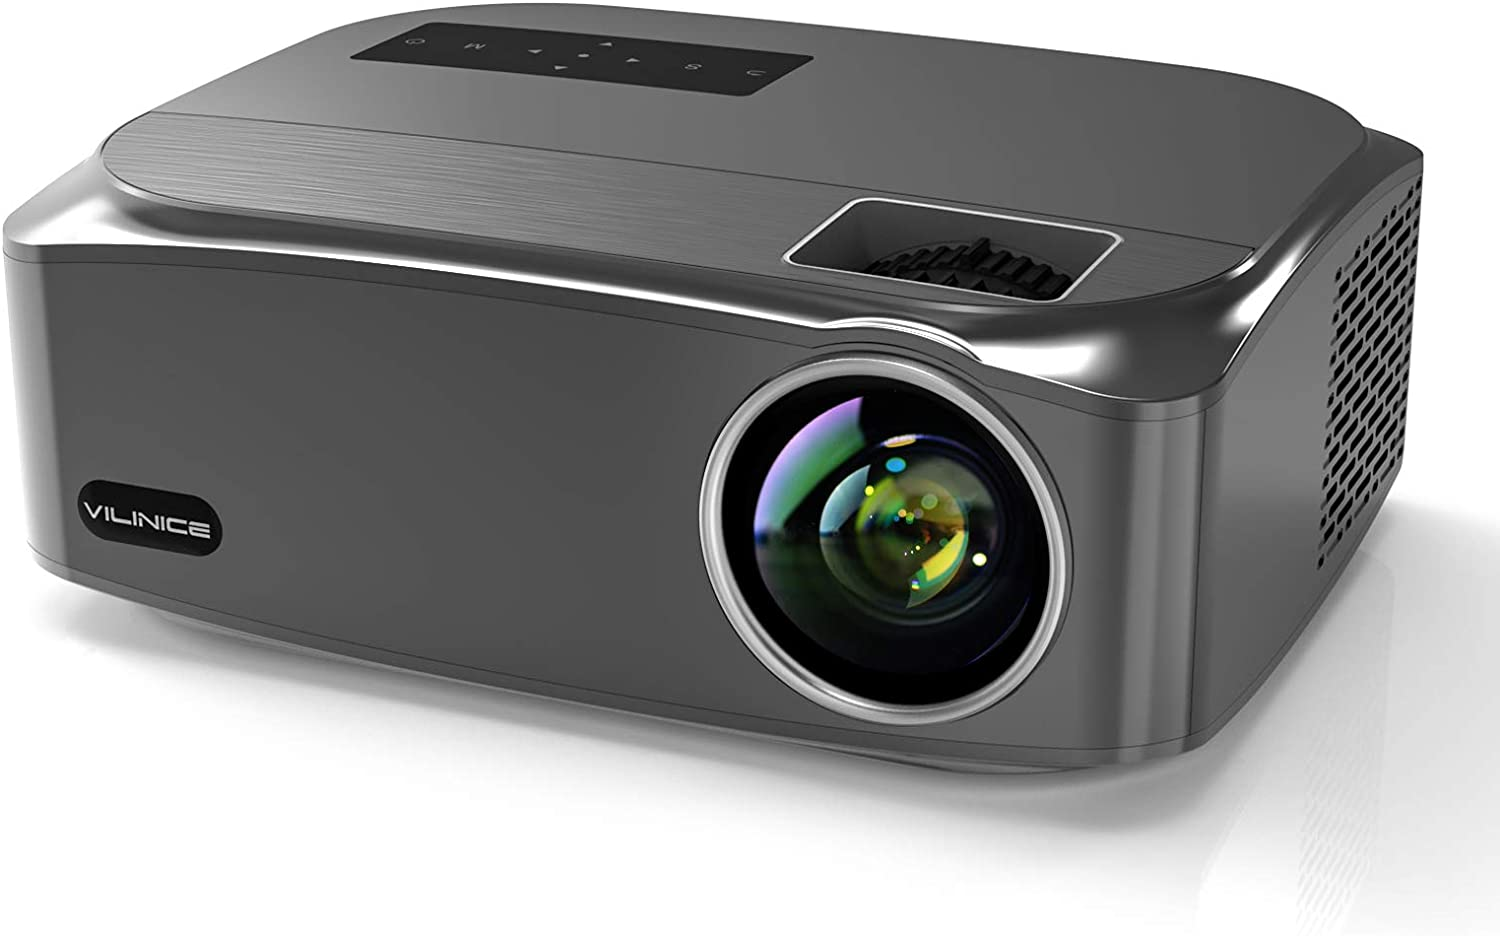 "Native 1080P Projector, VILINICE 7500Lux Full HD Movie Projector with max 300"" Display Ideal for Outdoor Movie Night, Home Theater, Compatible with TV Stick, PS4, HDMI, VGA, AV and USB"